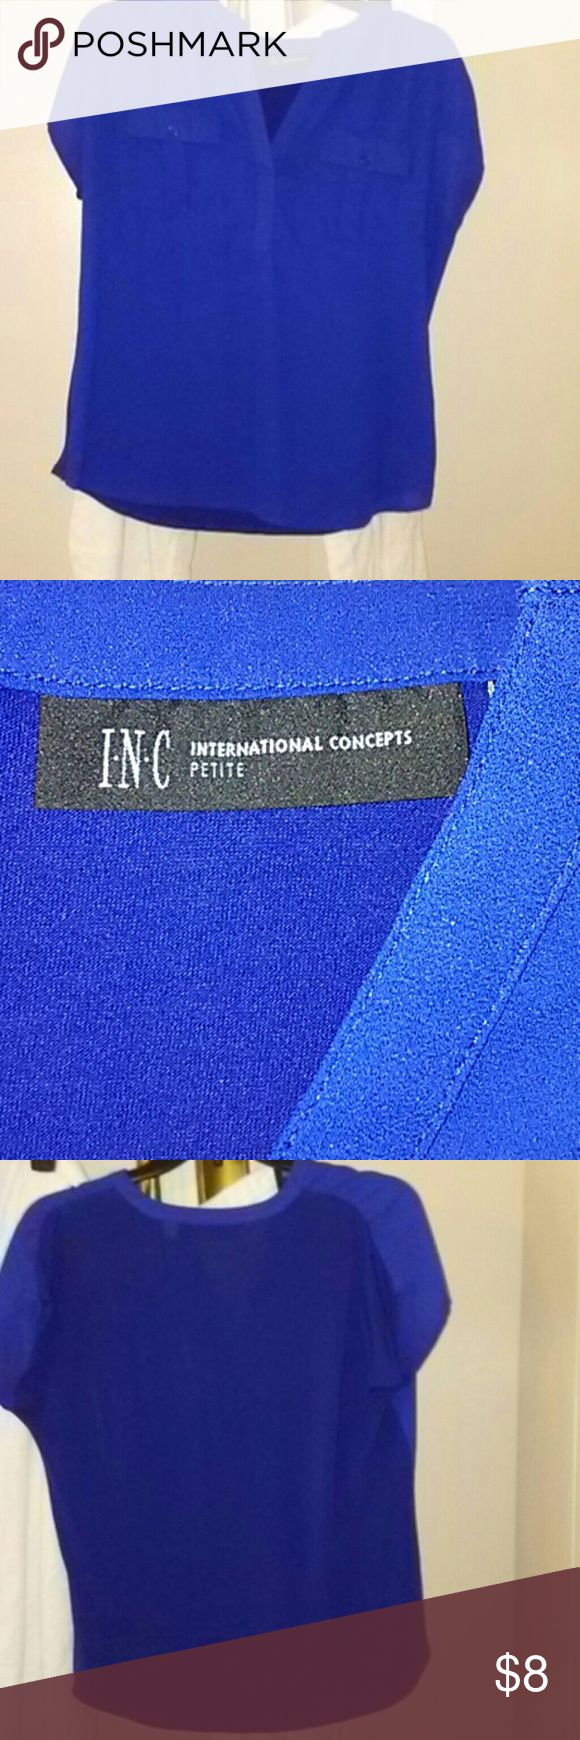 I-N-C Royal blue top Beautiful and in excellent condition. Top is bright Royal blue. Short sleeves. Smoke and pet free home. INC International Concepts Tops Blouses